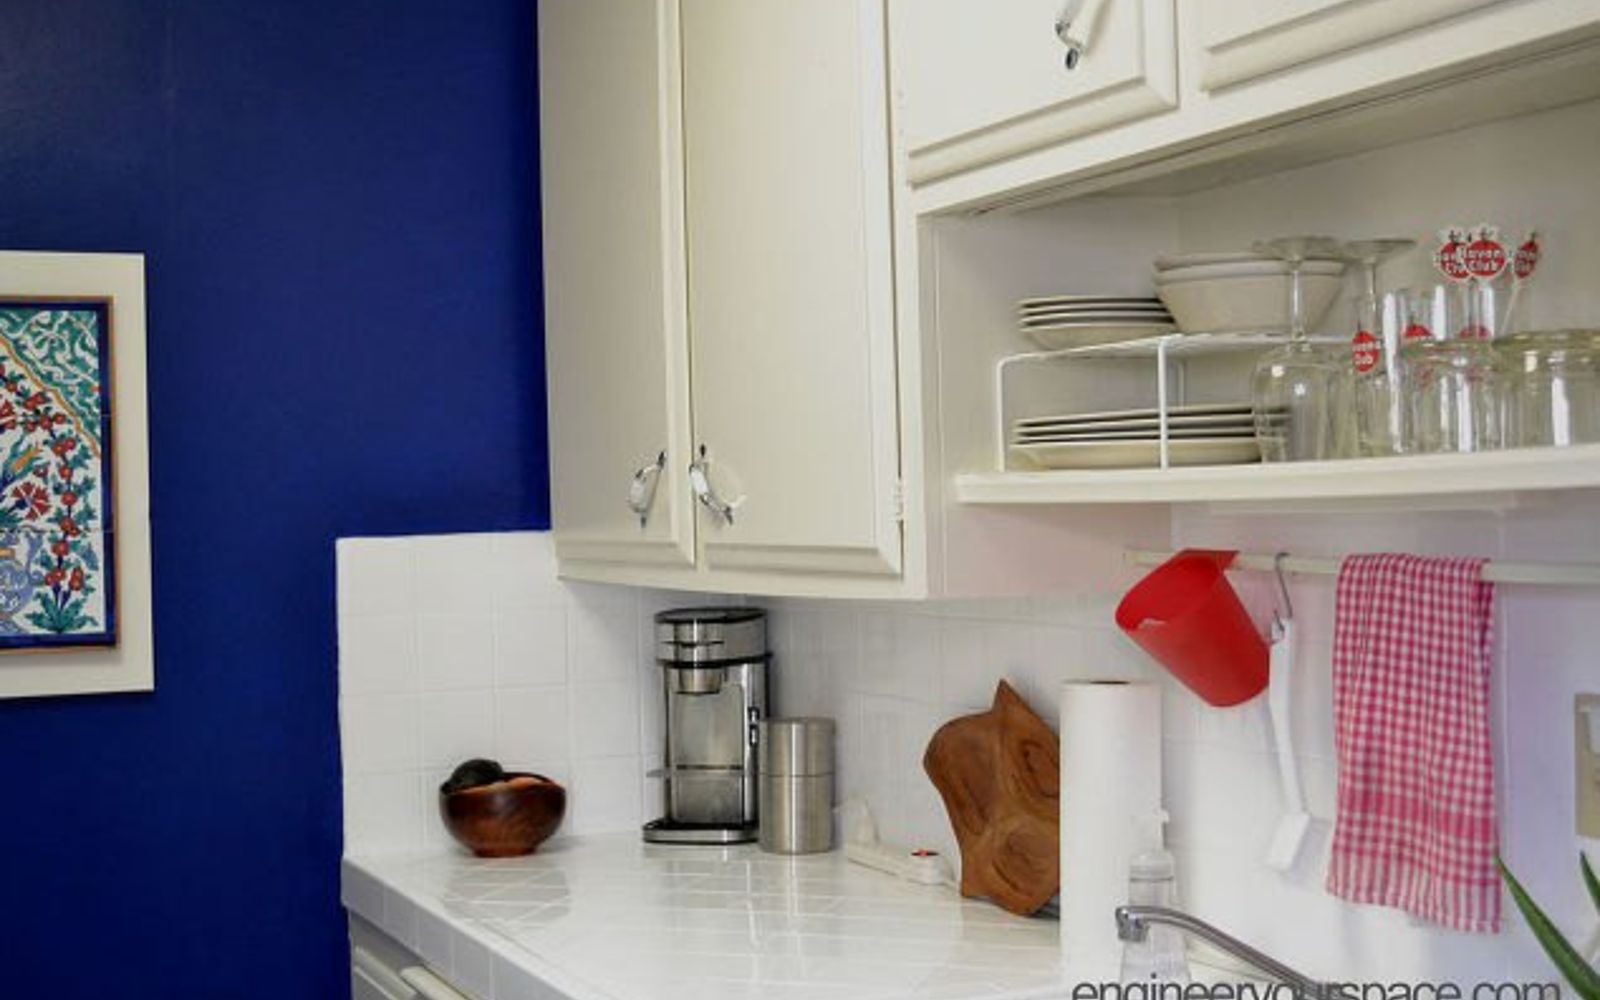 s 13 kitchen paint colors people are pinning like crazy, kitchen design, paint colors, Or paint an entire wall cobalt blue